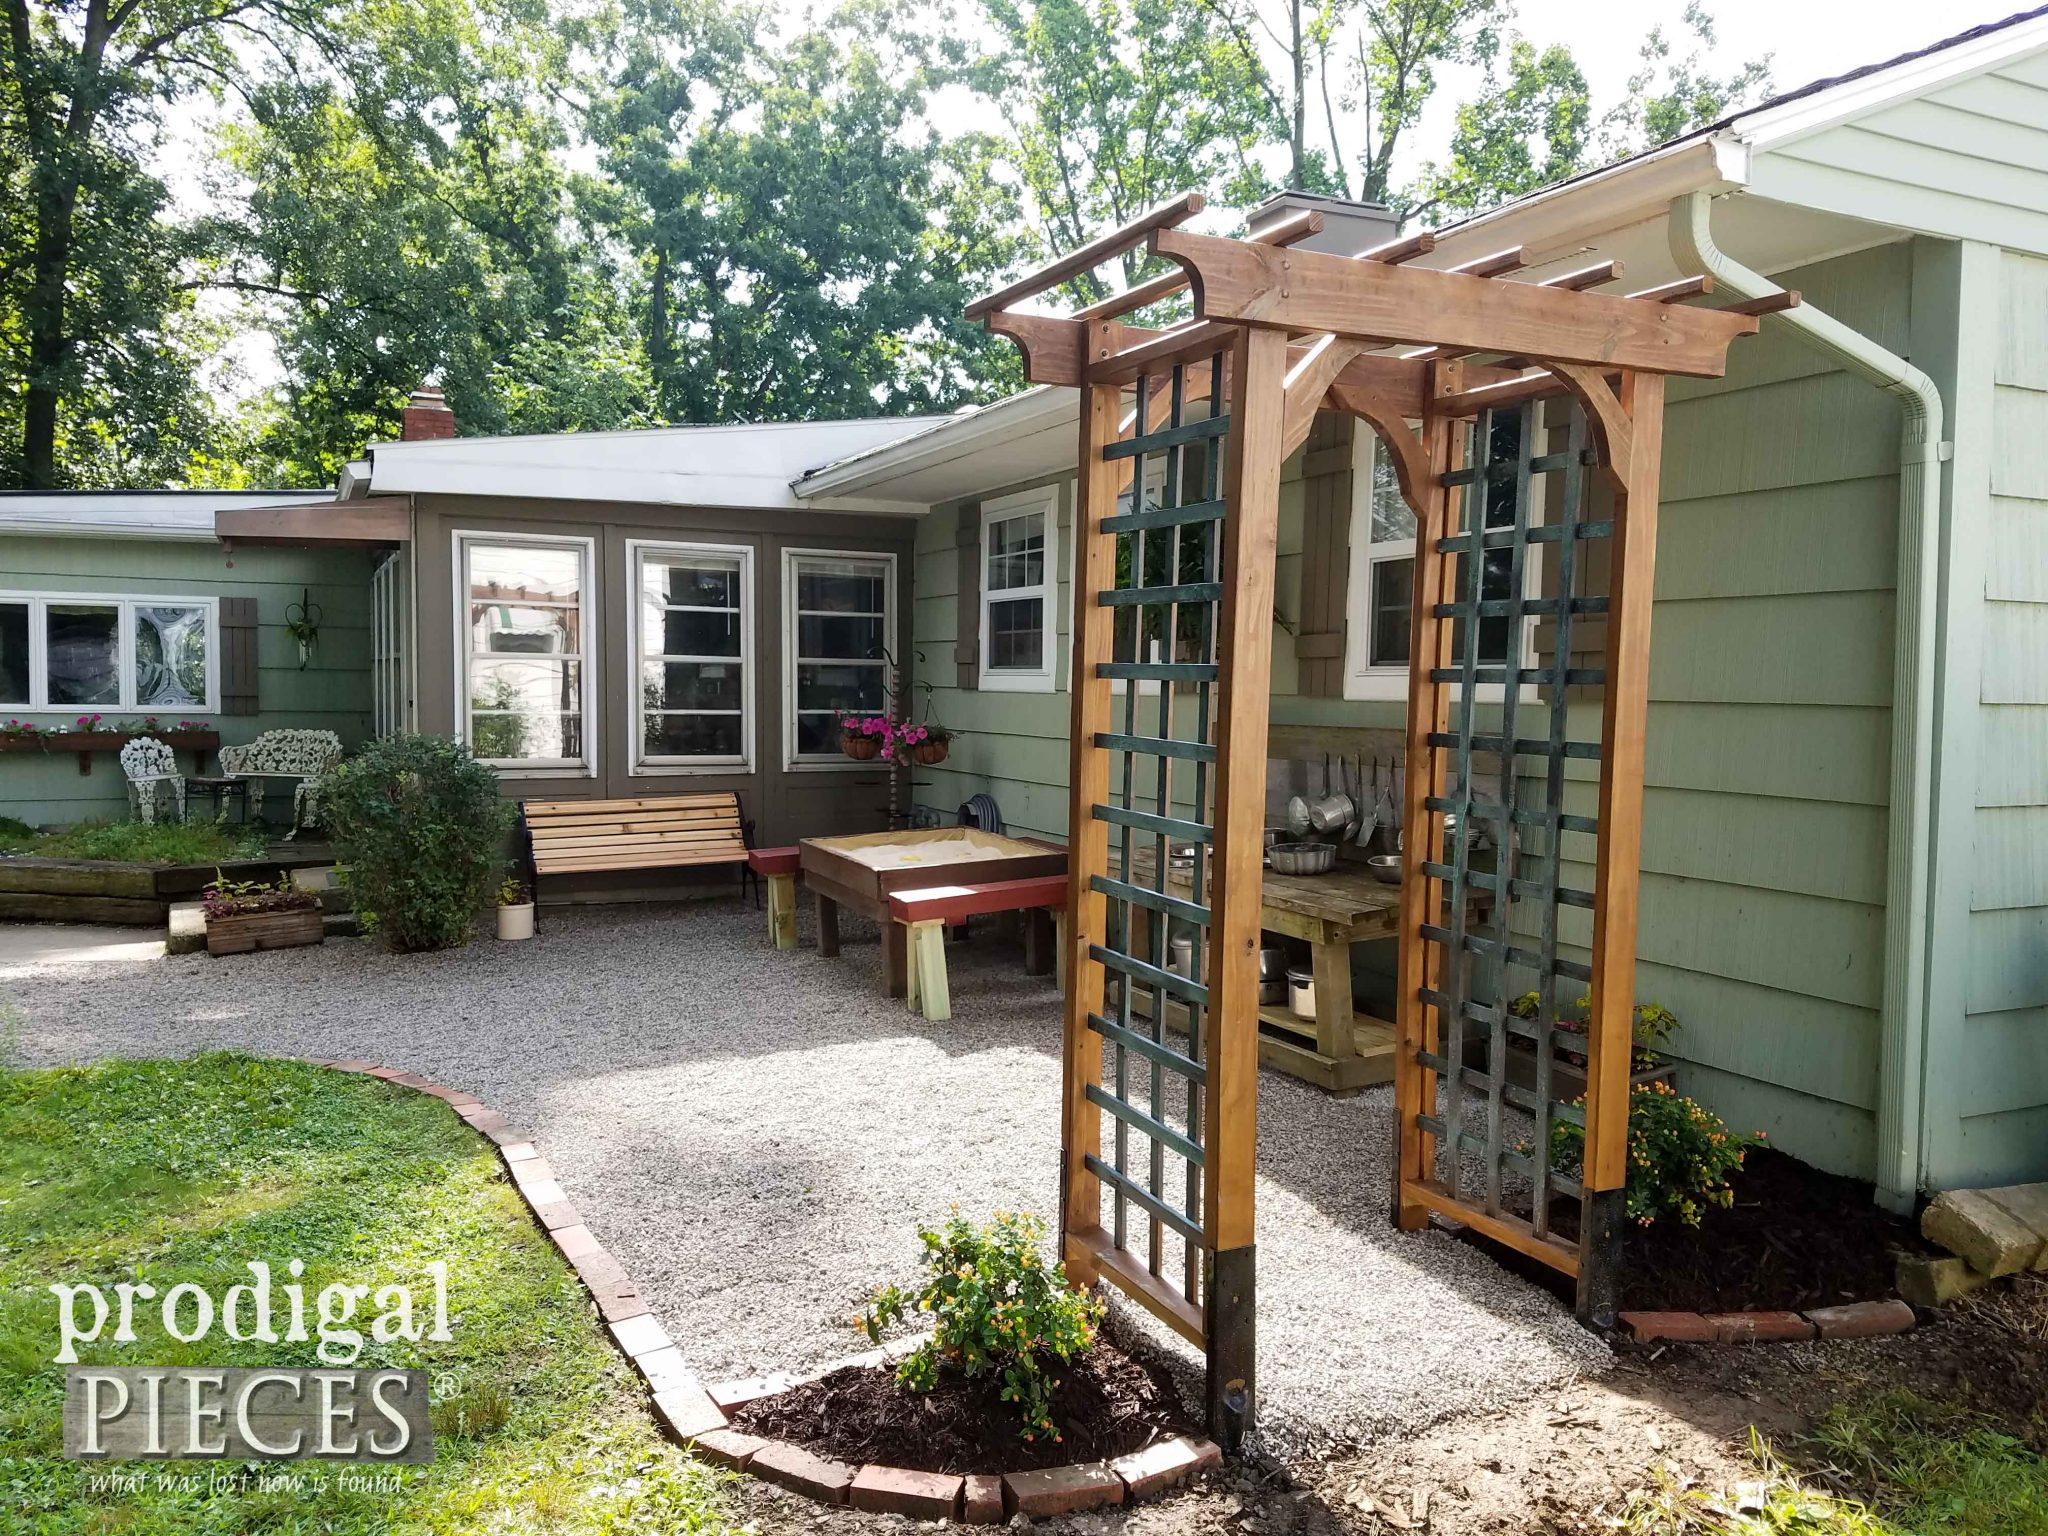 Diy Garden Arbor With Faux Patina Build Plans Prodigal Pieces with 11 Some of the Coolest Tricks of How to Makeover Backyard Arbor Ideas